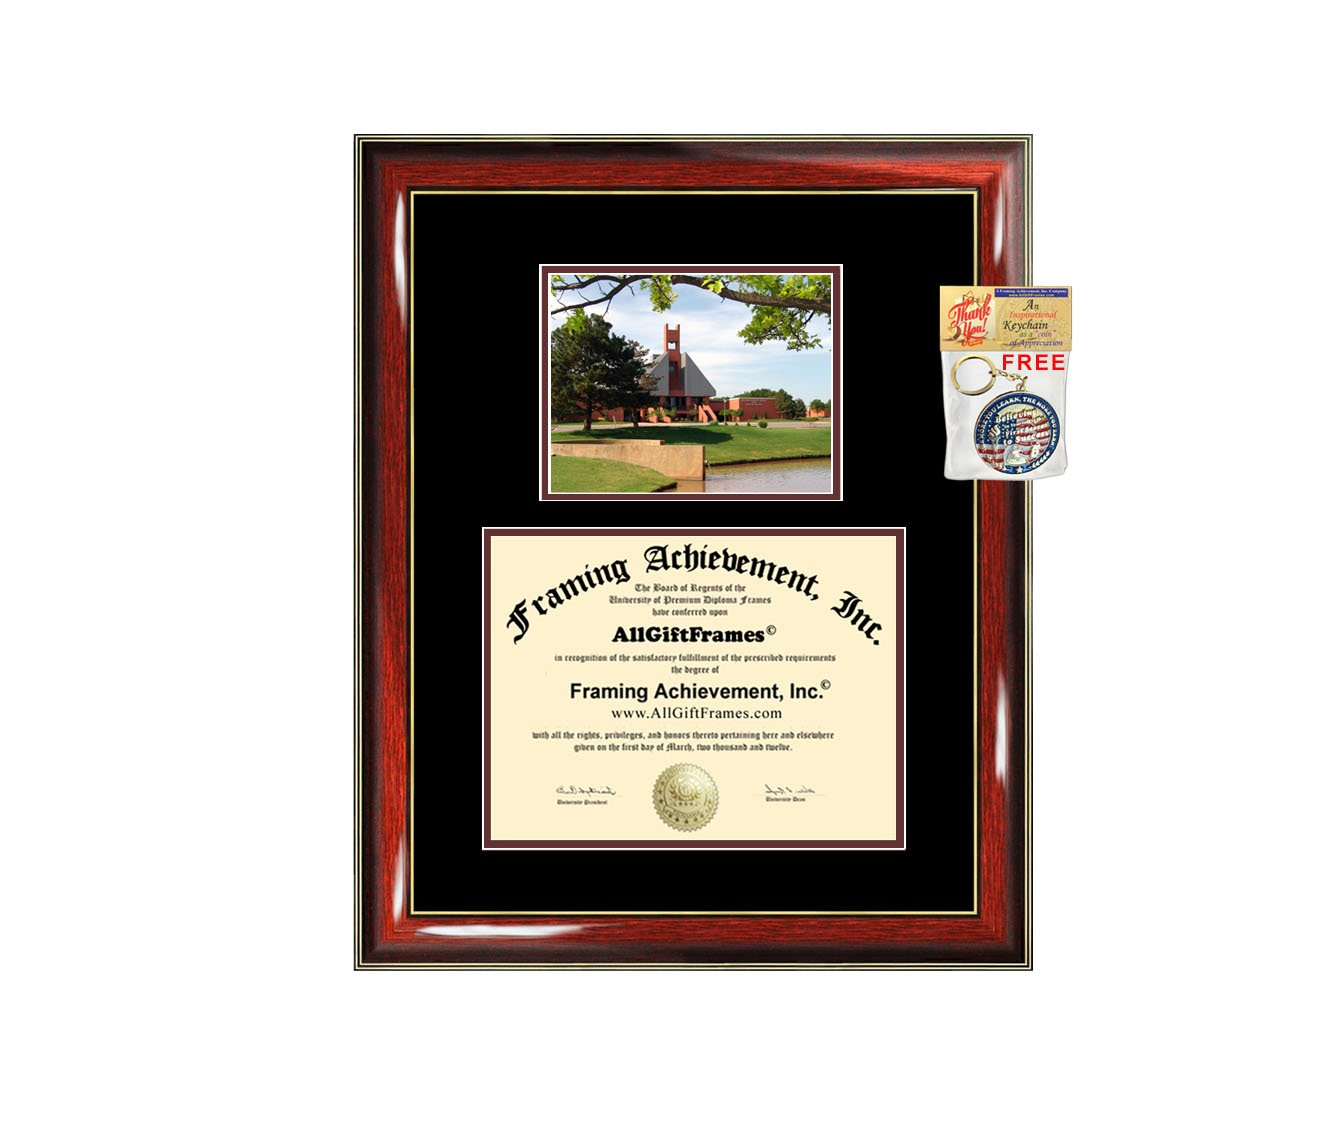 Oklahoma Christian University Diploma Frame OCU College Graduation Degree Frame Campus Photo Certificate Plaque Framing Graduate Gift Document Double Holder Case Bachelor Master PhD Doctorate